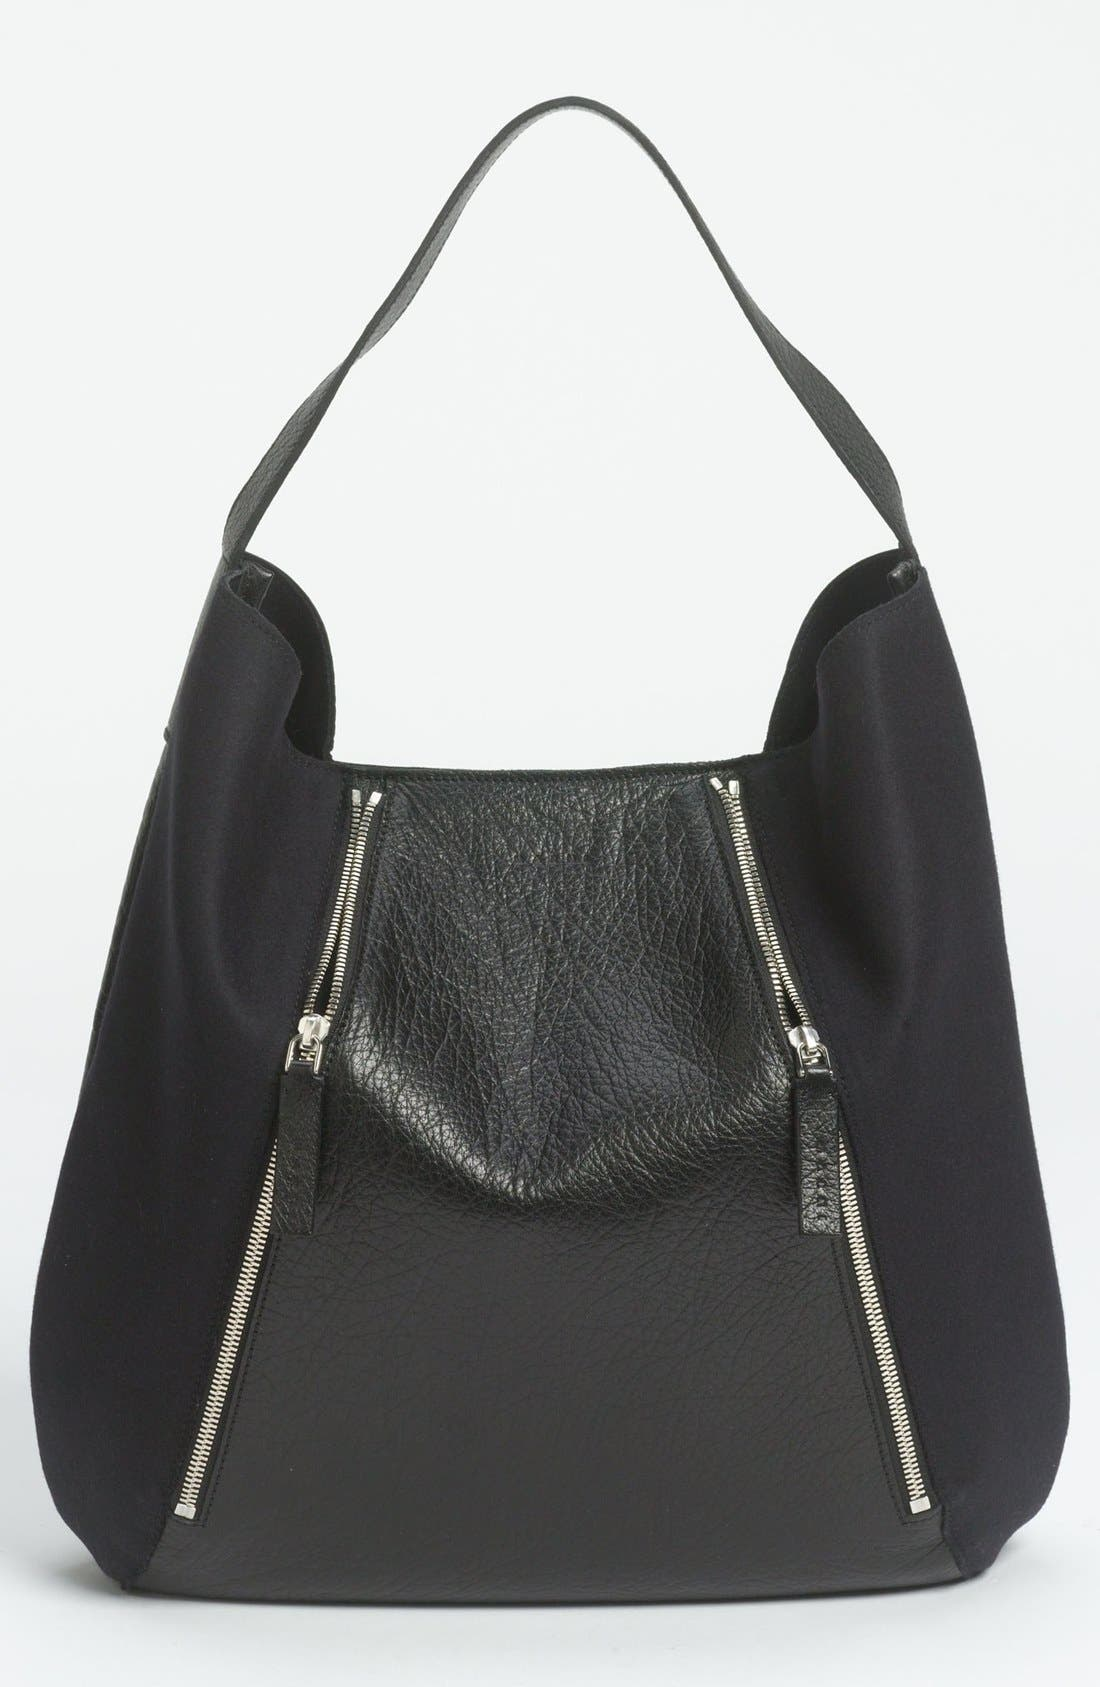 Alternate Image 1 Selected - Marni Bicolor Leather & Fabric Hobo